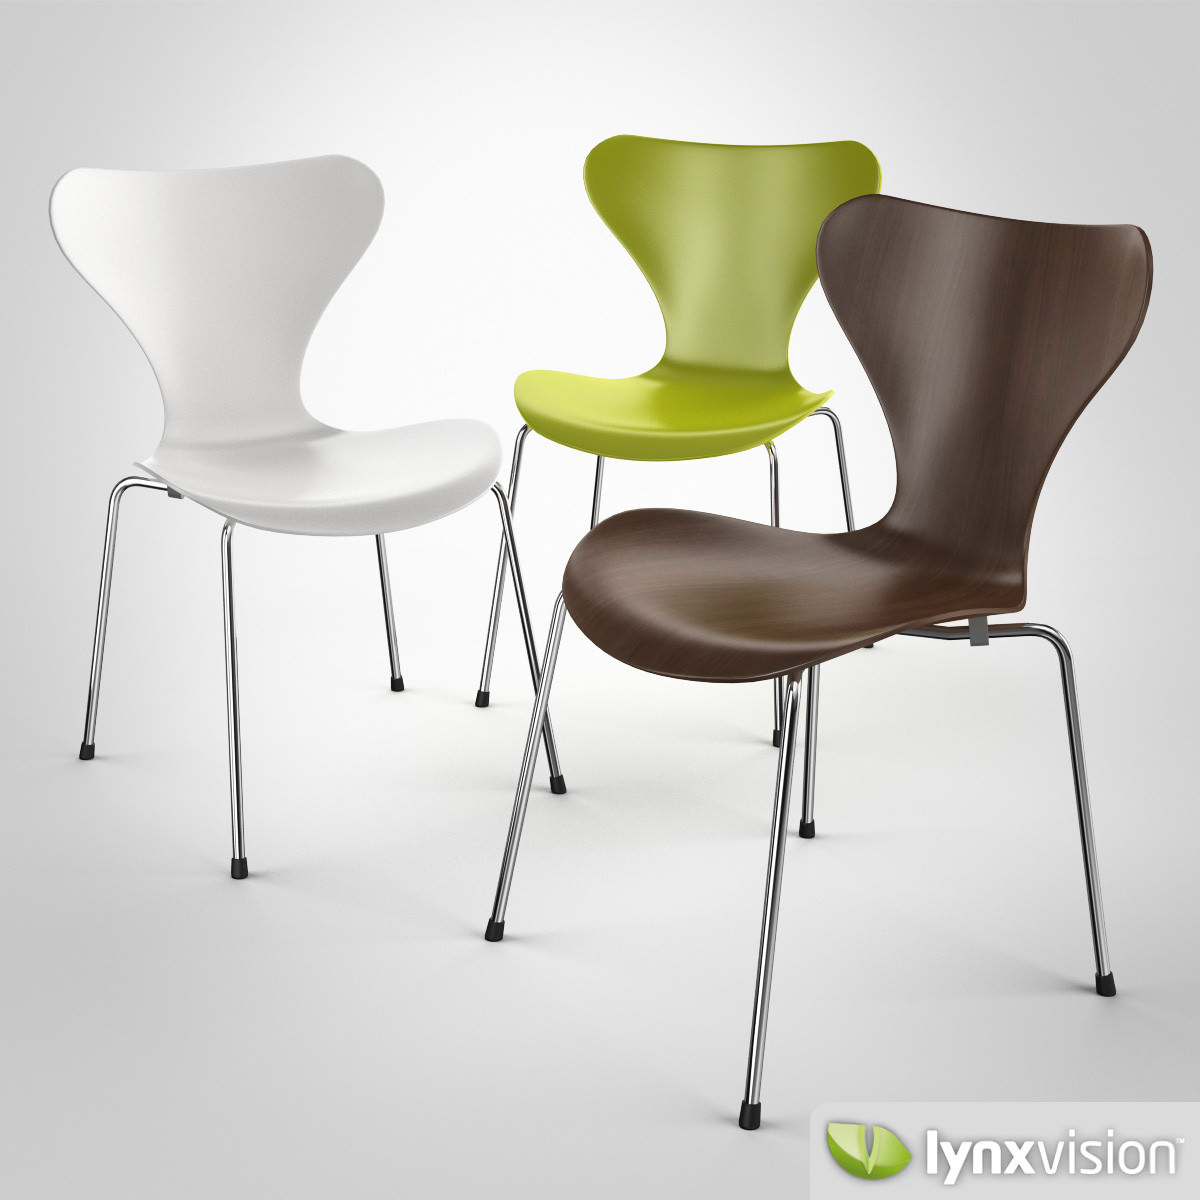 Serie 7 Chair By Arne Jacobsen 3d Model Max Obj Fbx Mtl 1 ...